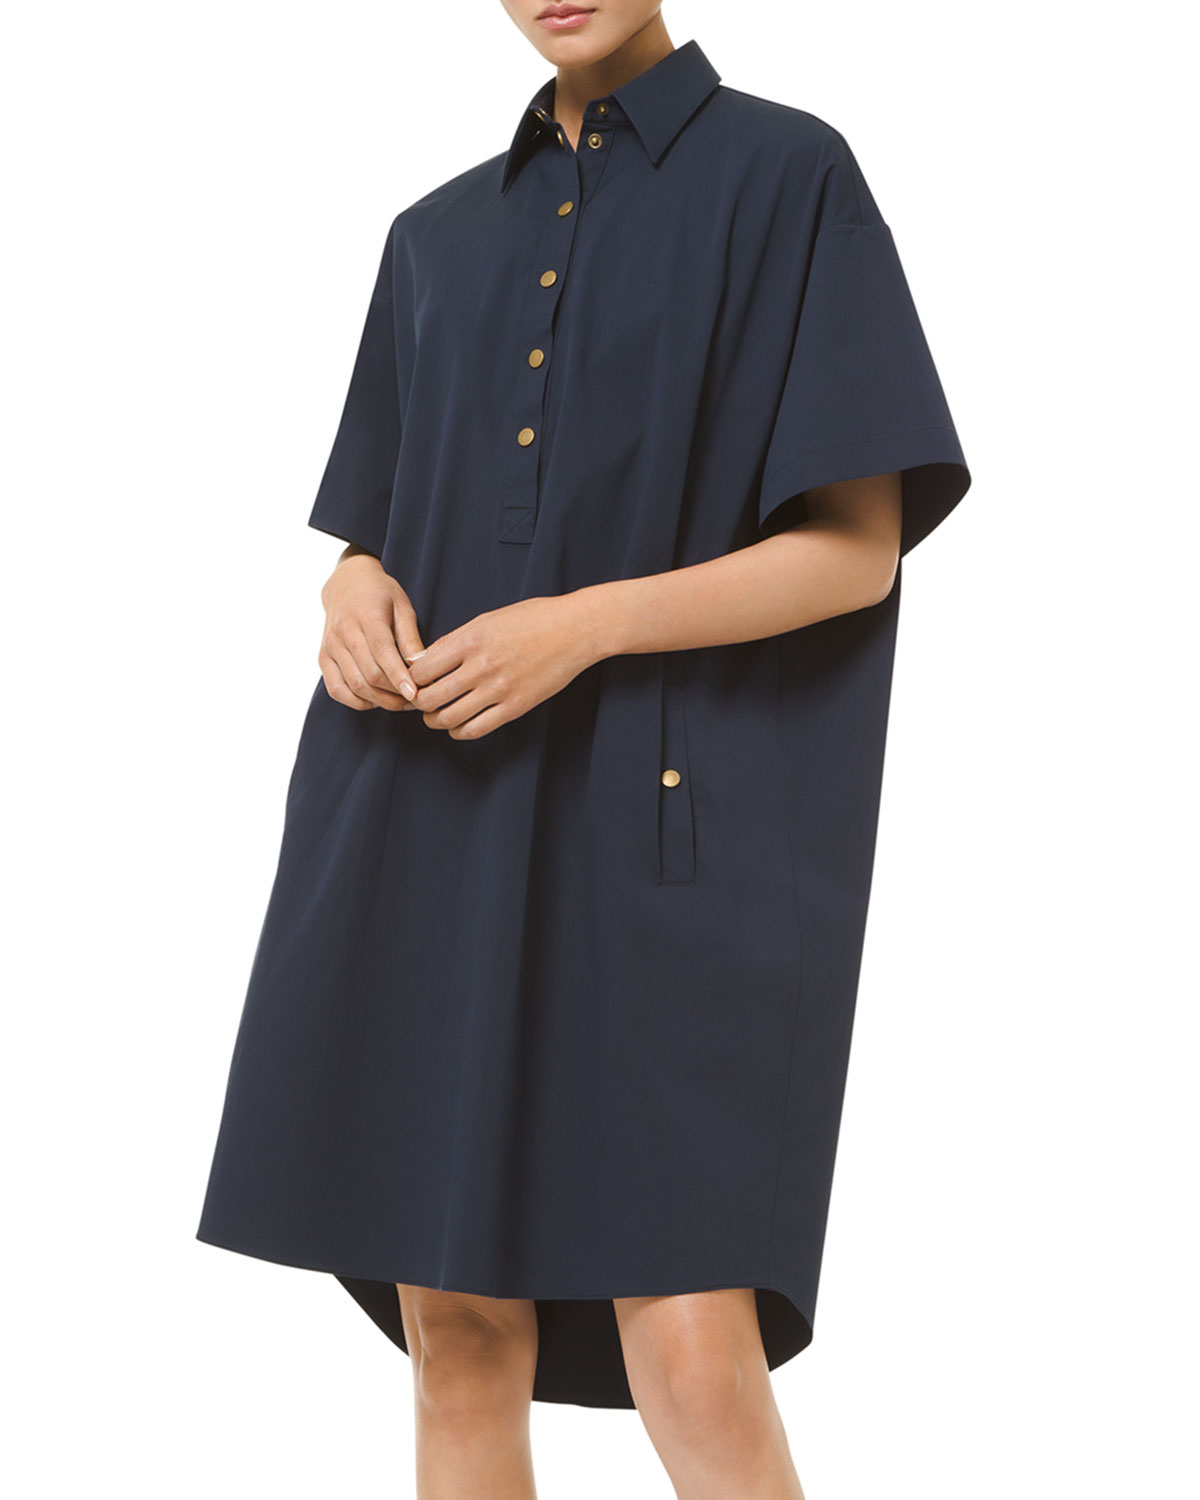 Michael Kors HIGH-LOW SHIFT DRESS